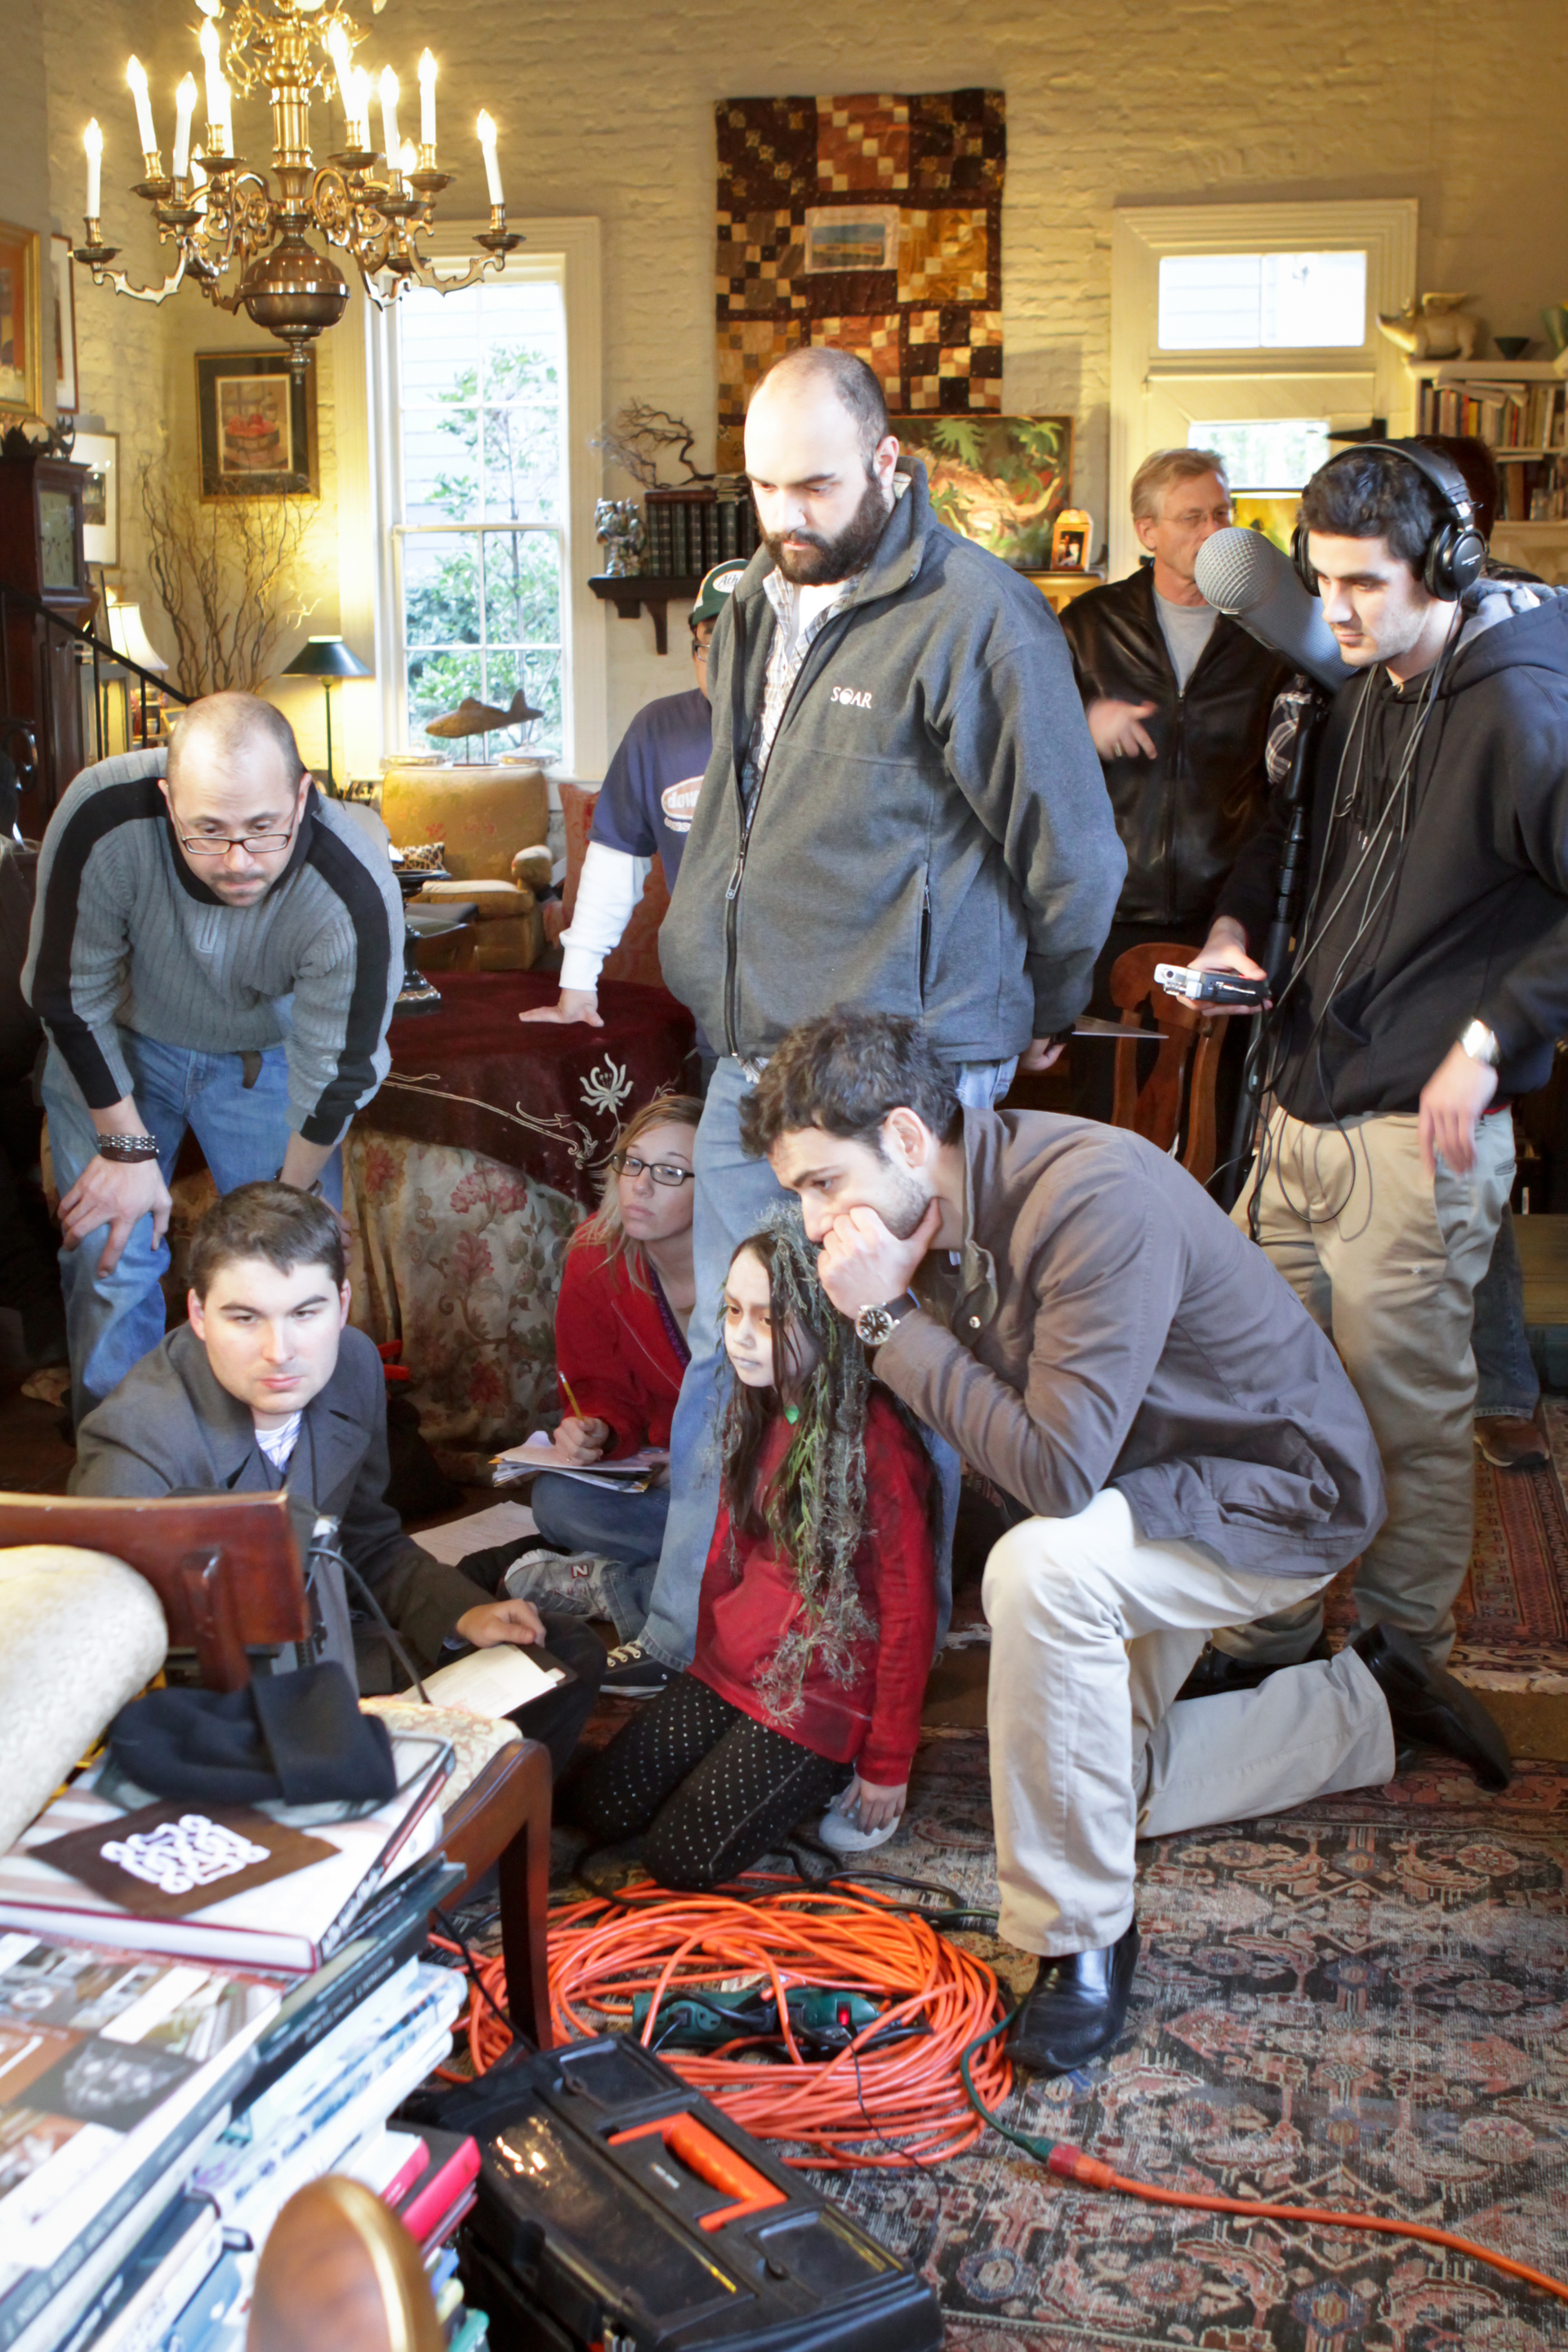 Followed Will McIntosh 2011 director James Kicklighter on set 5